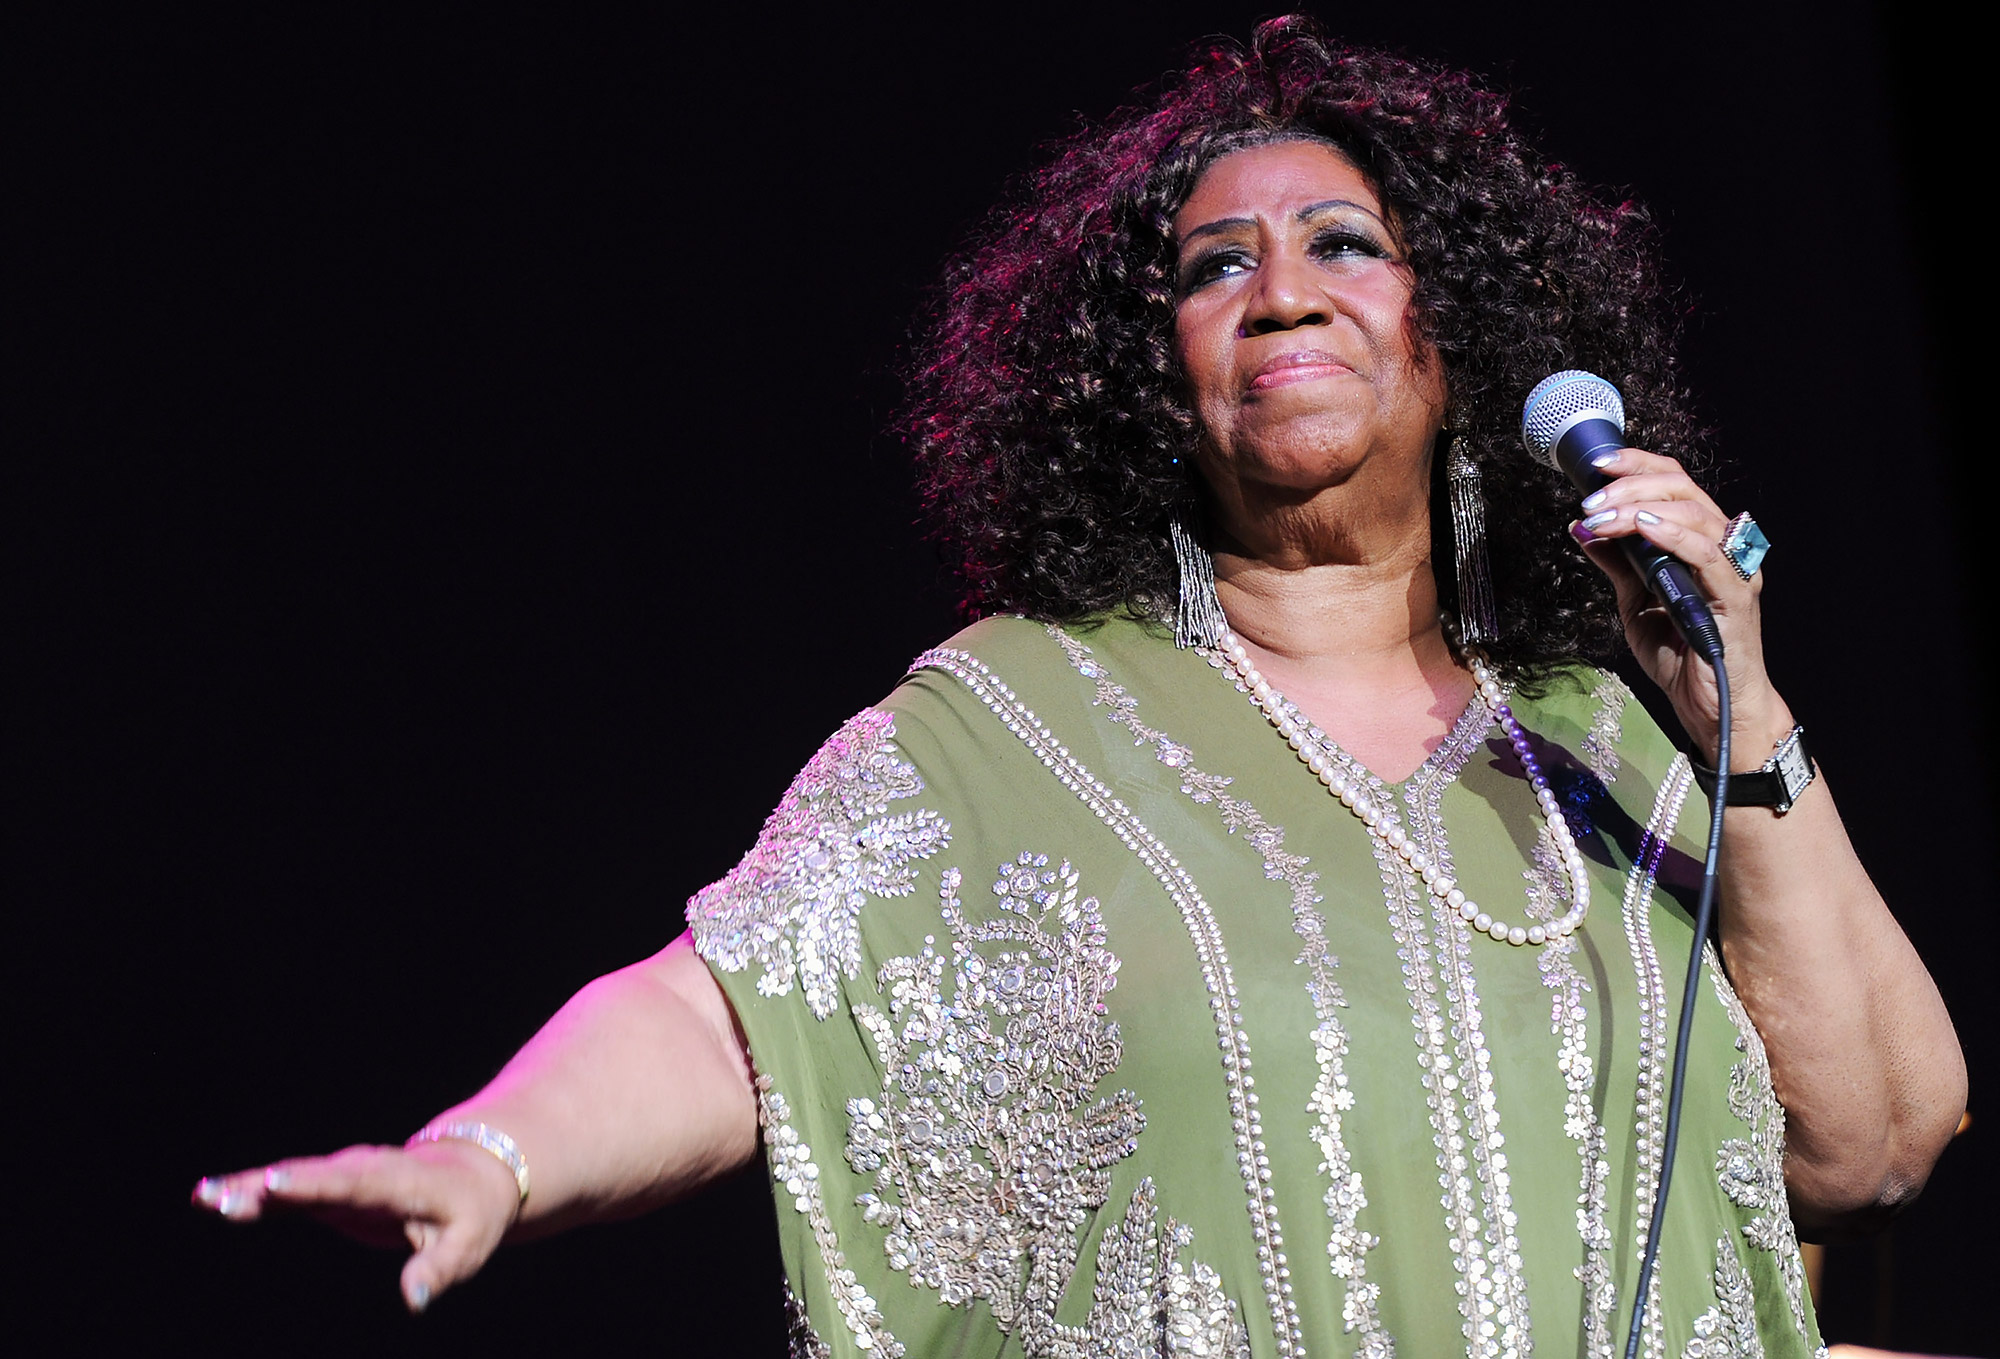 Queen of Soul's Top 10 Greatest Songs와 함께 Aretha Franklin을 기억하십시오